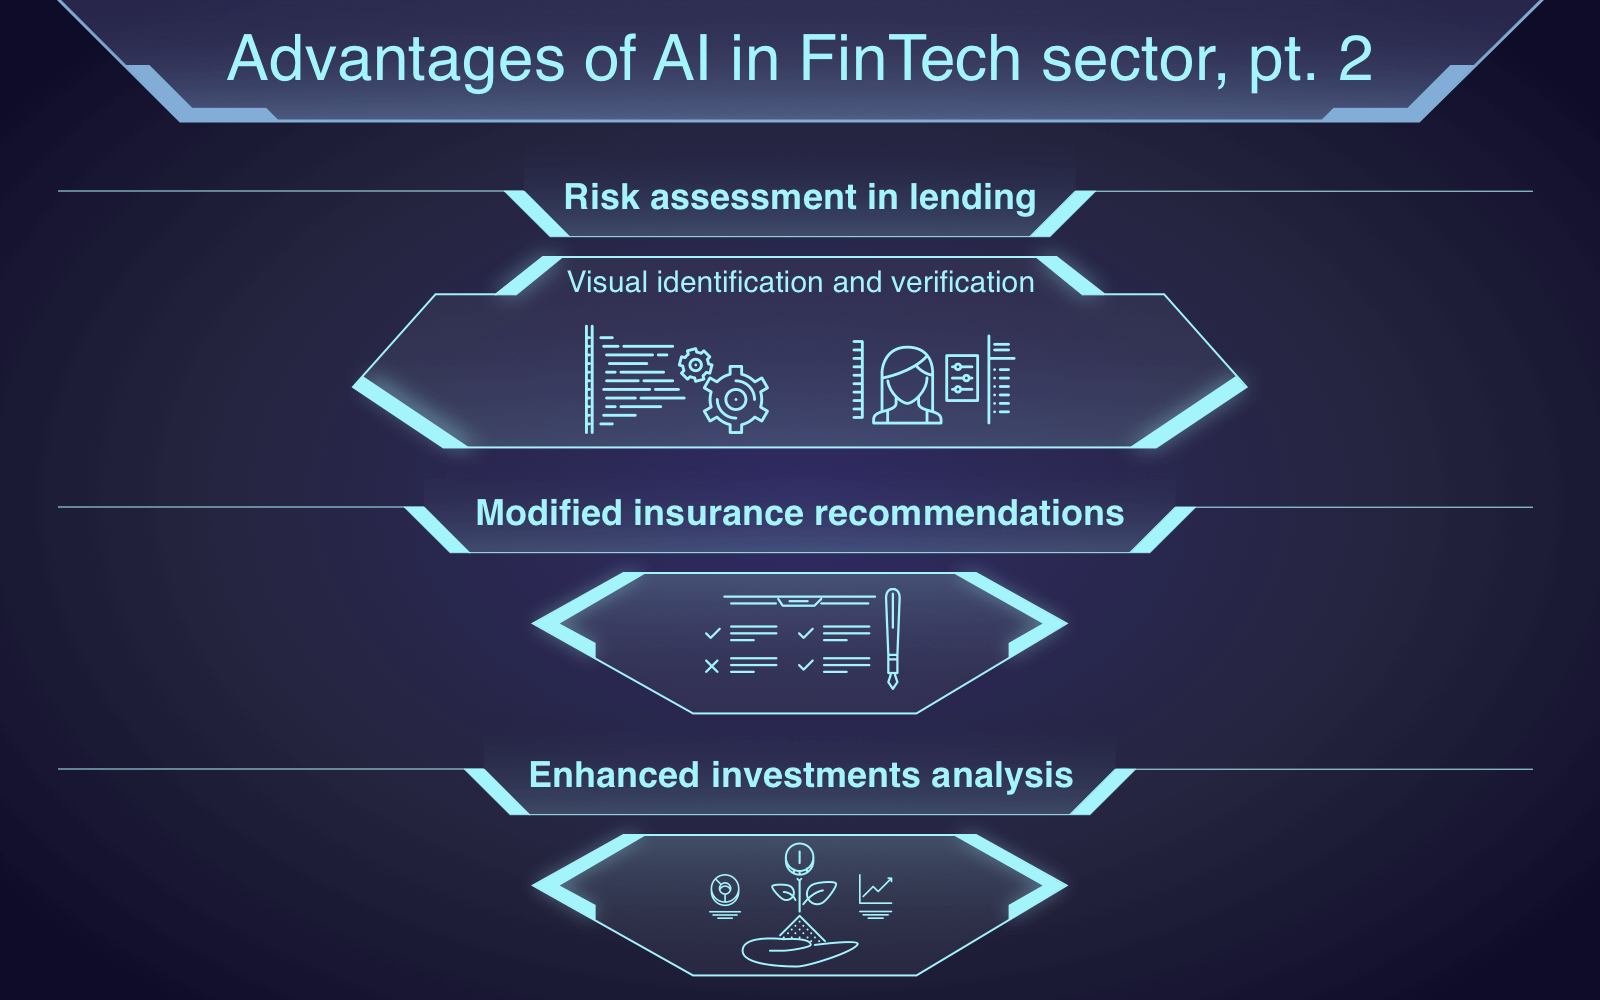 Advantages of AI in FinTech sector, part 2